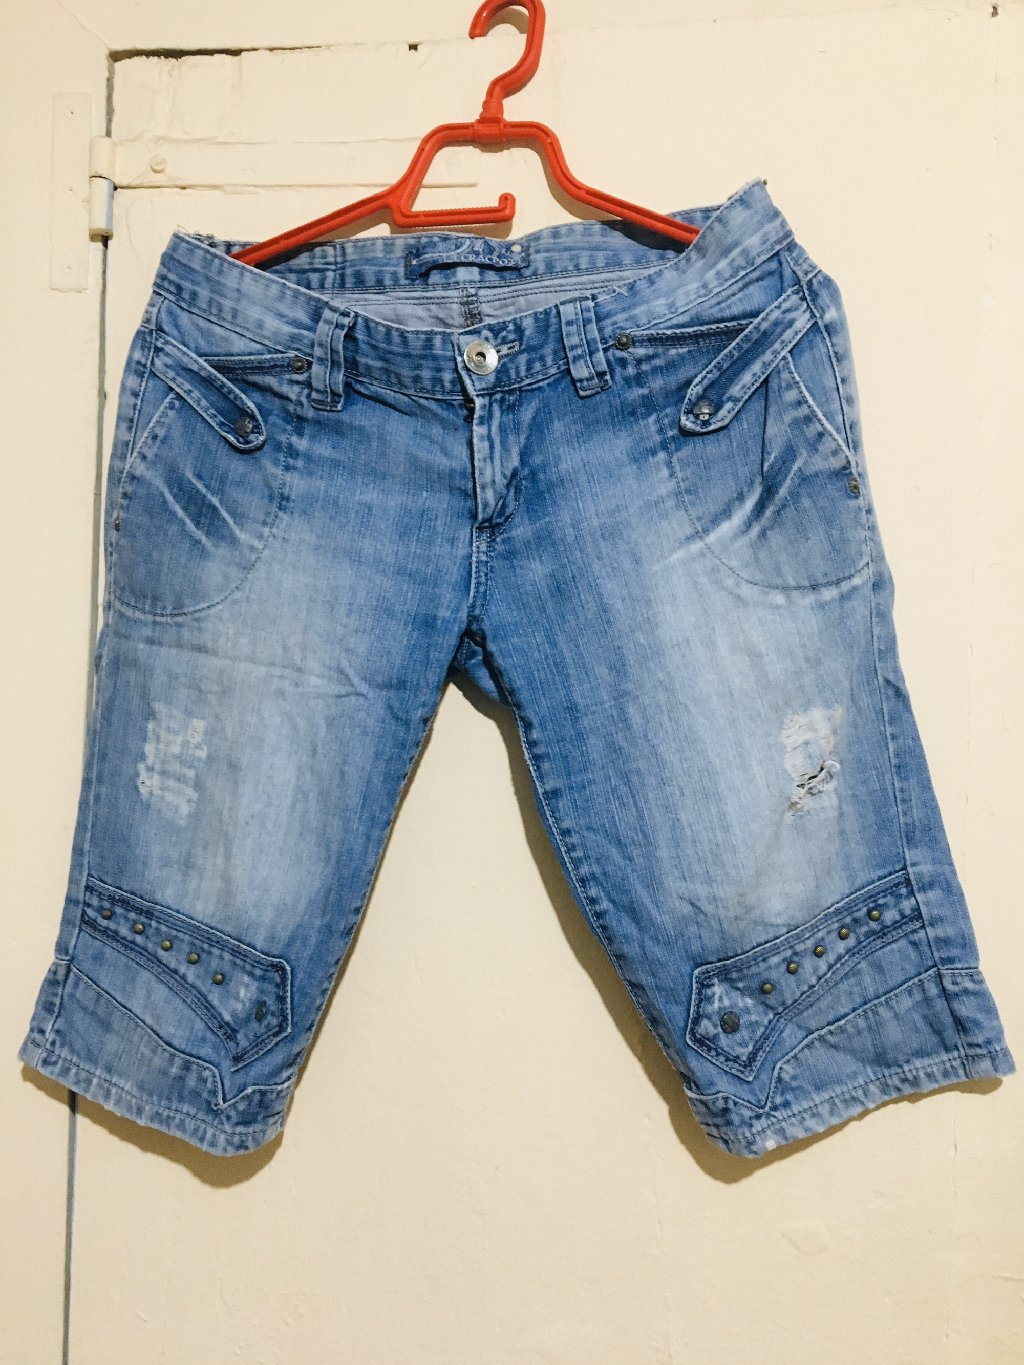 Jeans number 30